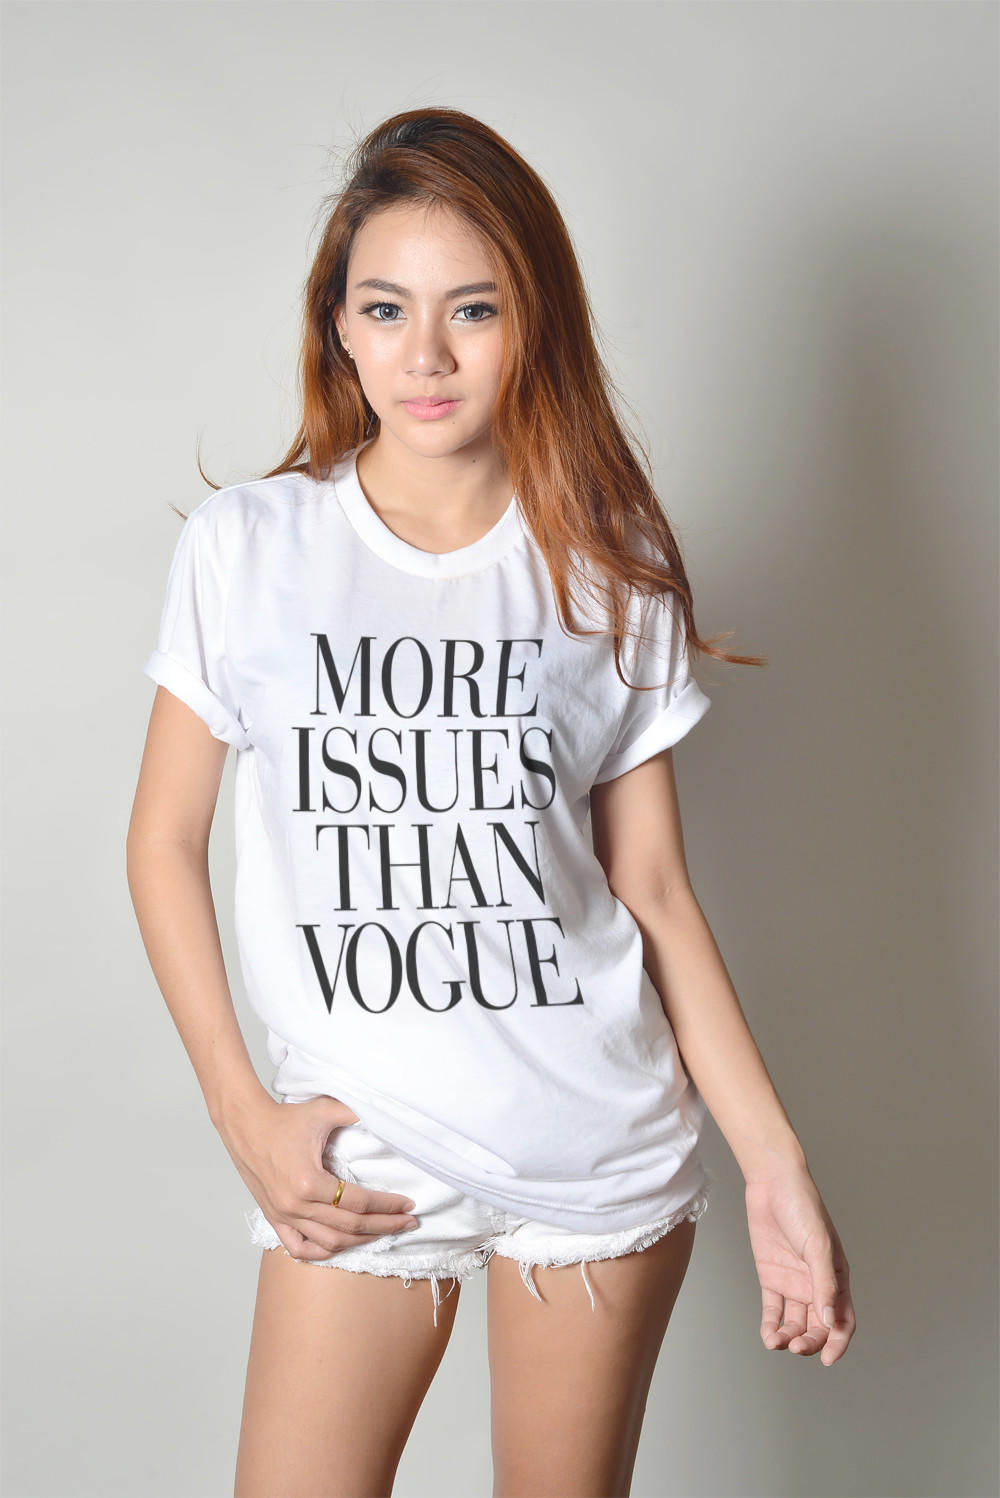 More Issues Than Vogue T-Shirt Cute Teen from LuvMeLuvMyShirts